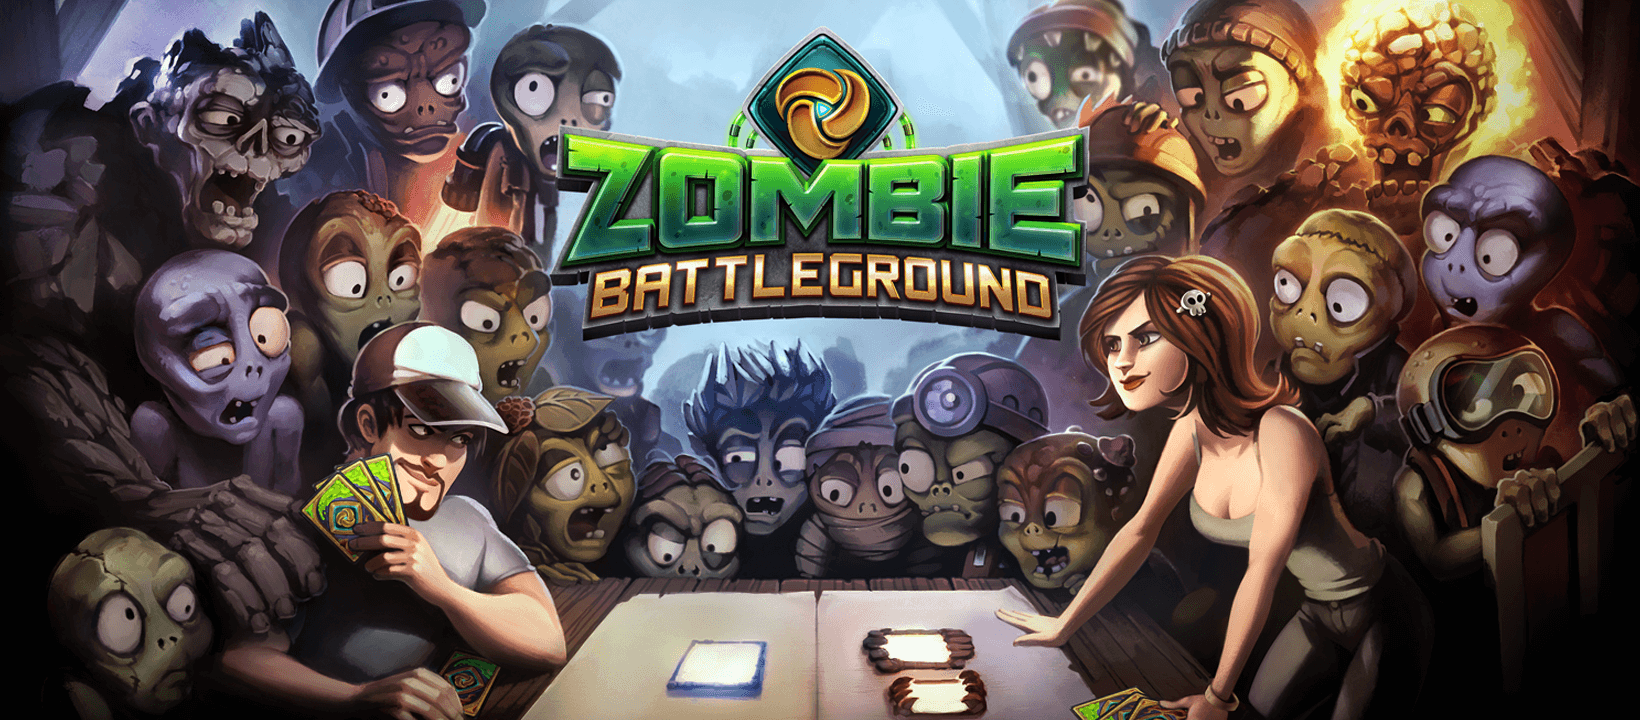 Introducing Zombie Battleground A Collectible Card Game